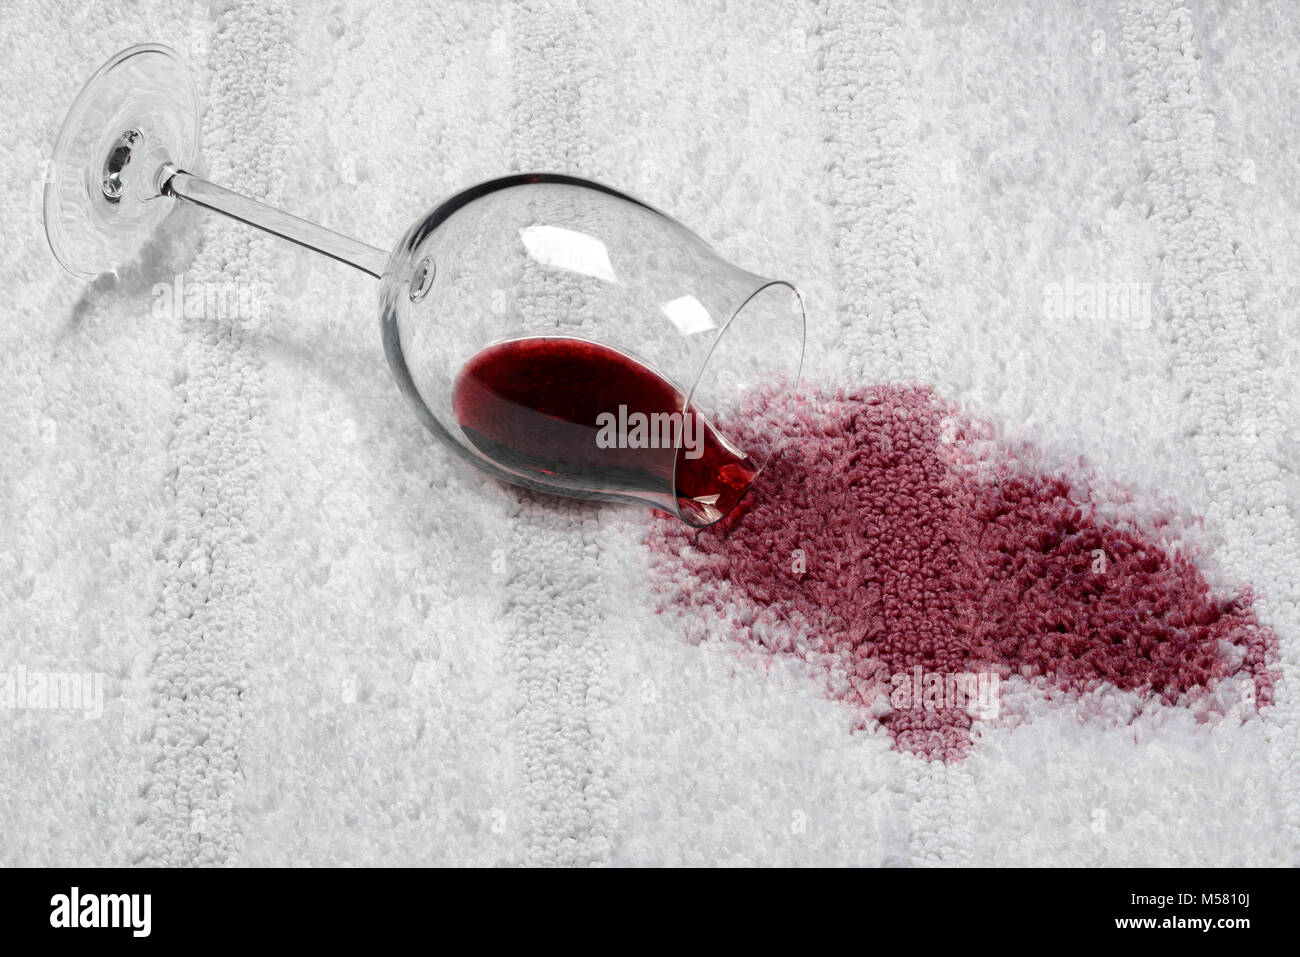 Carpet Stain Stock Photos Amp Carpet Stain Stock Images Alamy